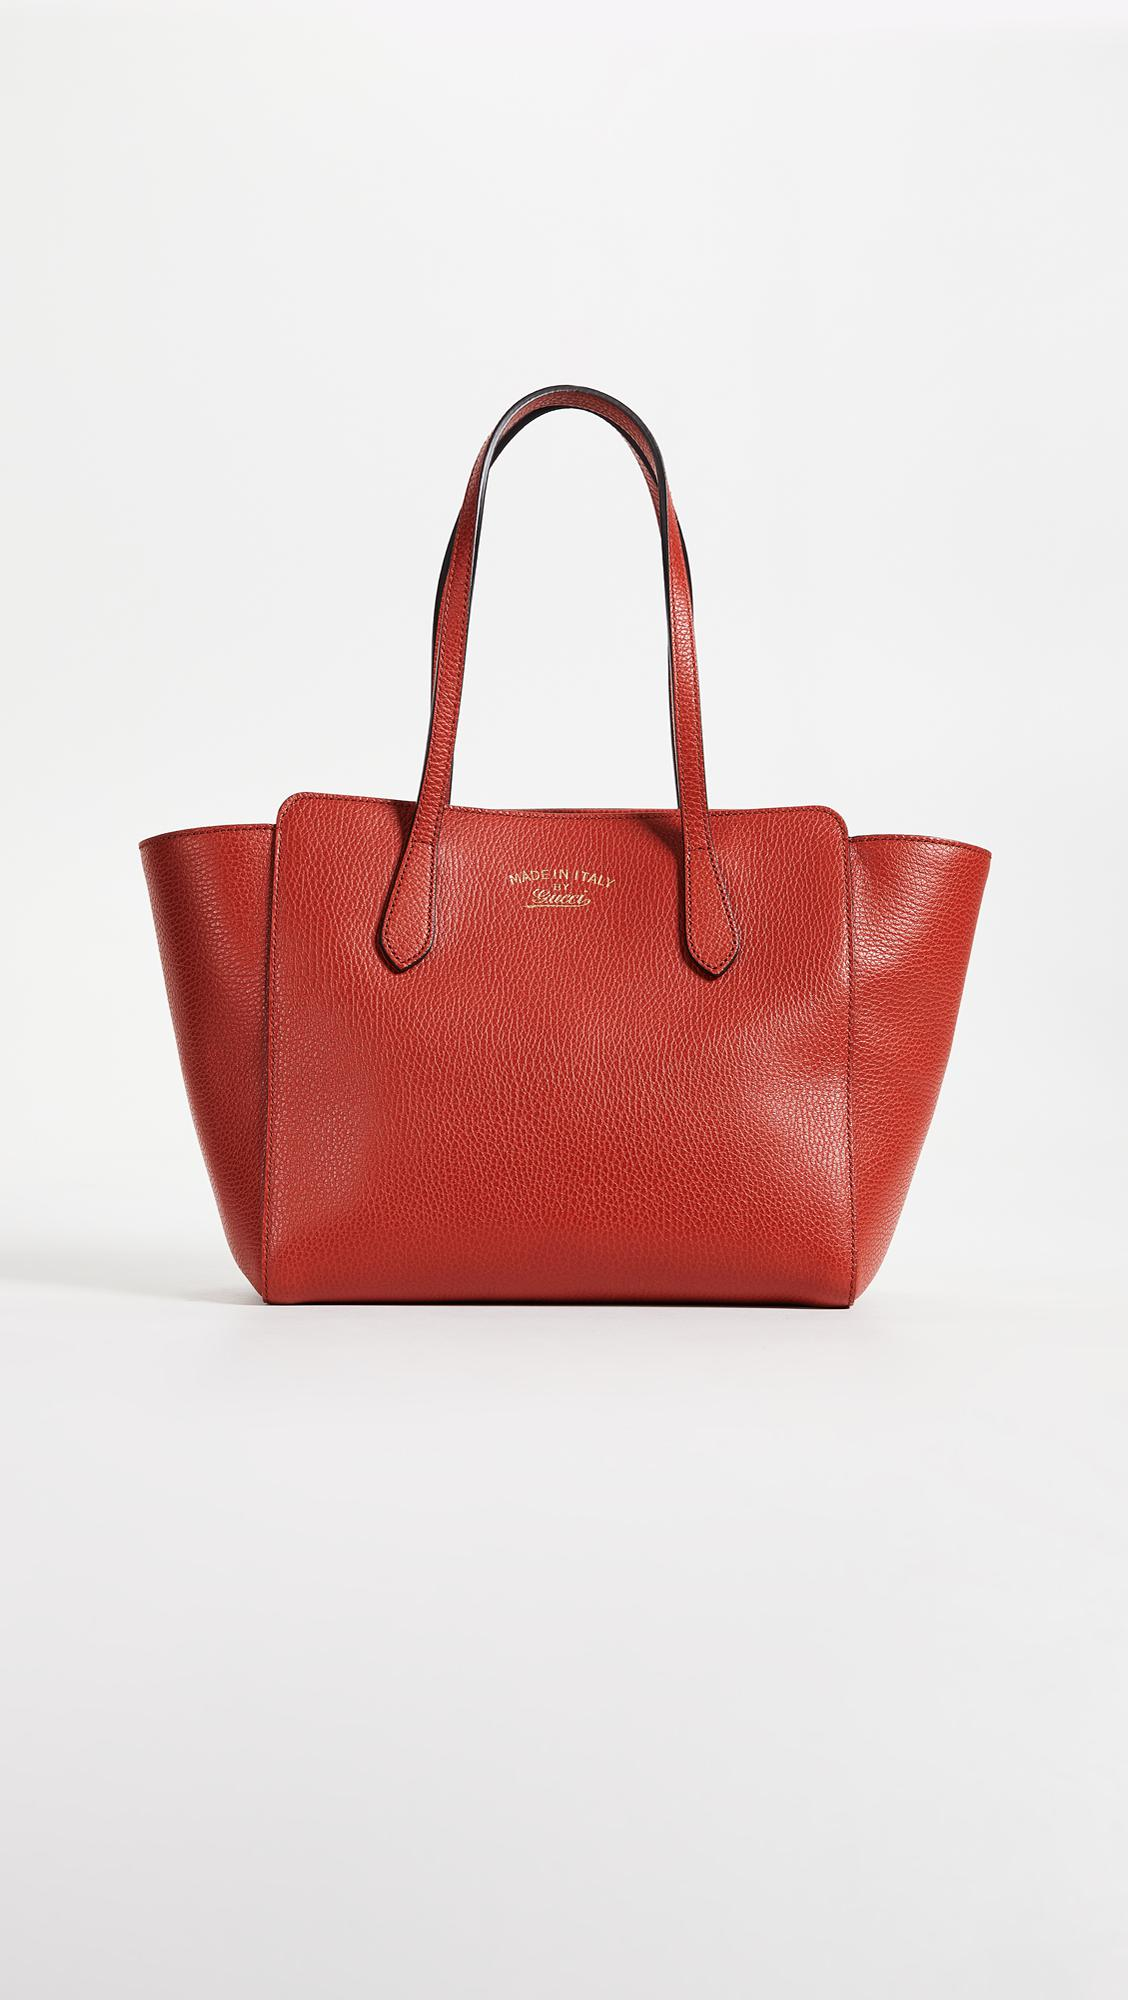 f1e383eff06 Lyst - What Goes Around Comes Around Gucci Swing Tote in Red